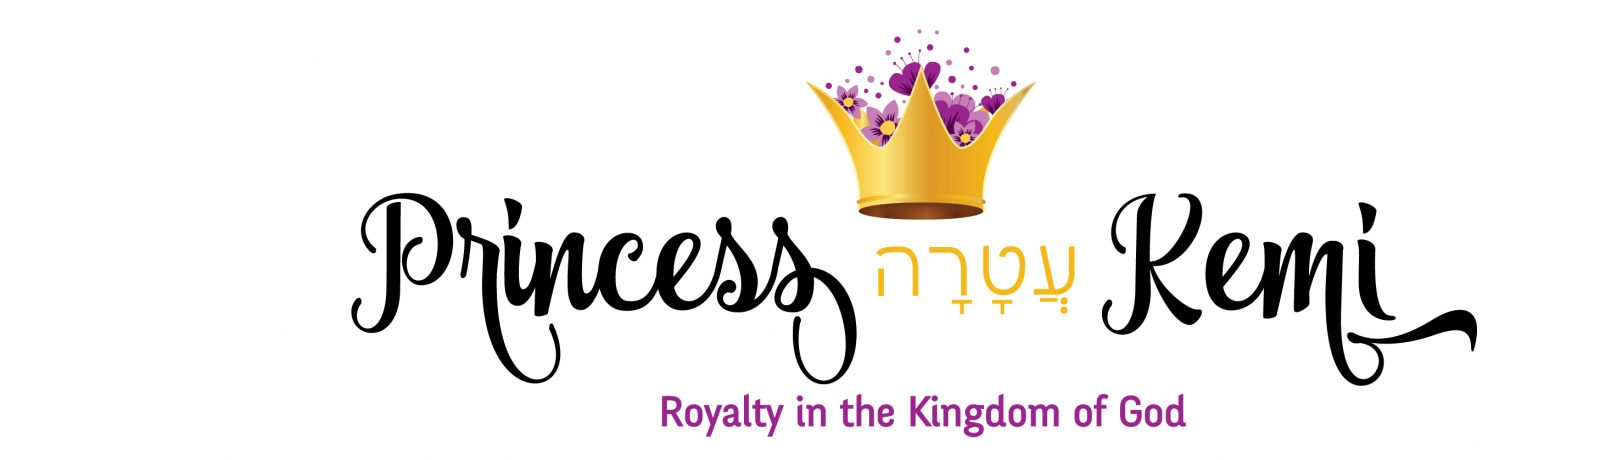 Princess עֲטָרָה Kemi - Christian Lifestyle Blogger